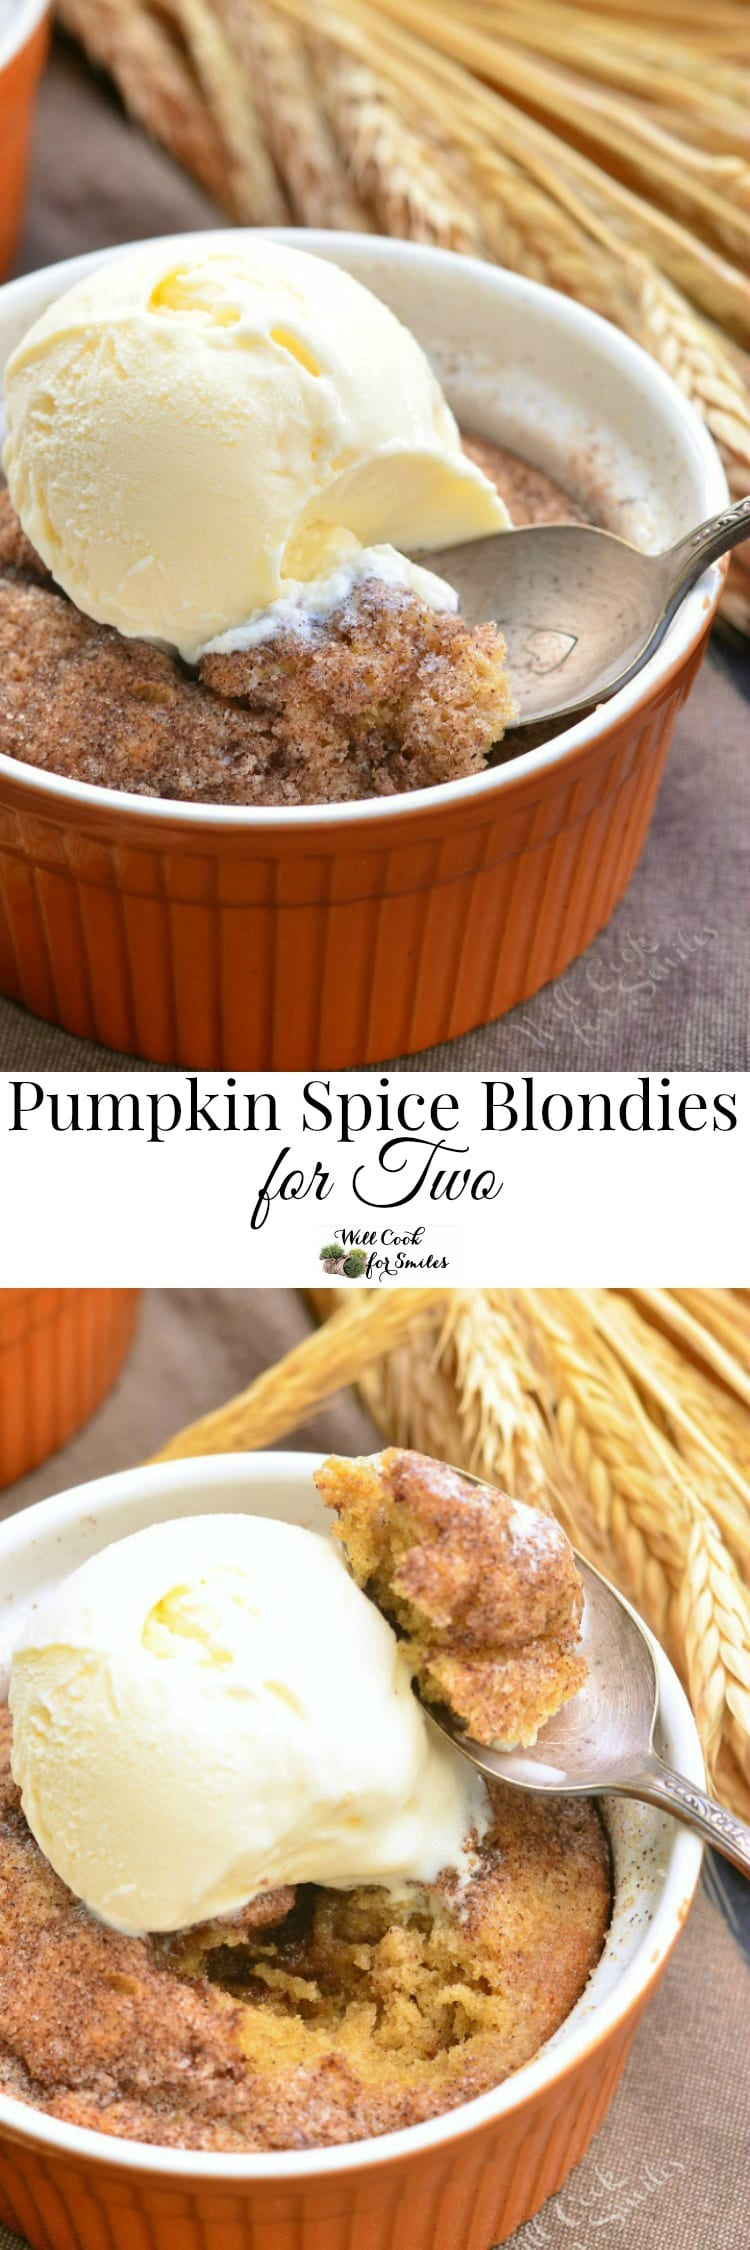 Pumpkin Pie Spice Blondies For Two. Divine pumpkin spice, buttery blondies made in a small batch, in just few minutes.